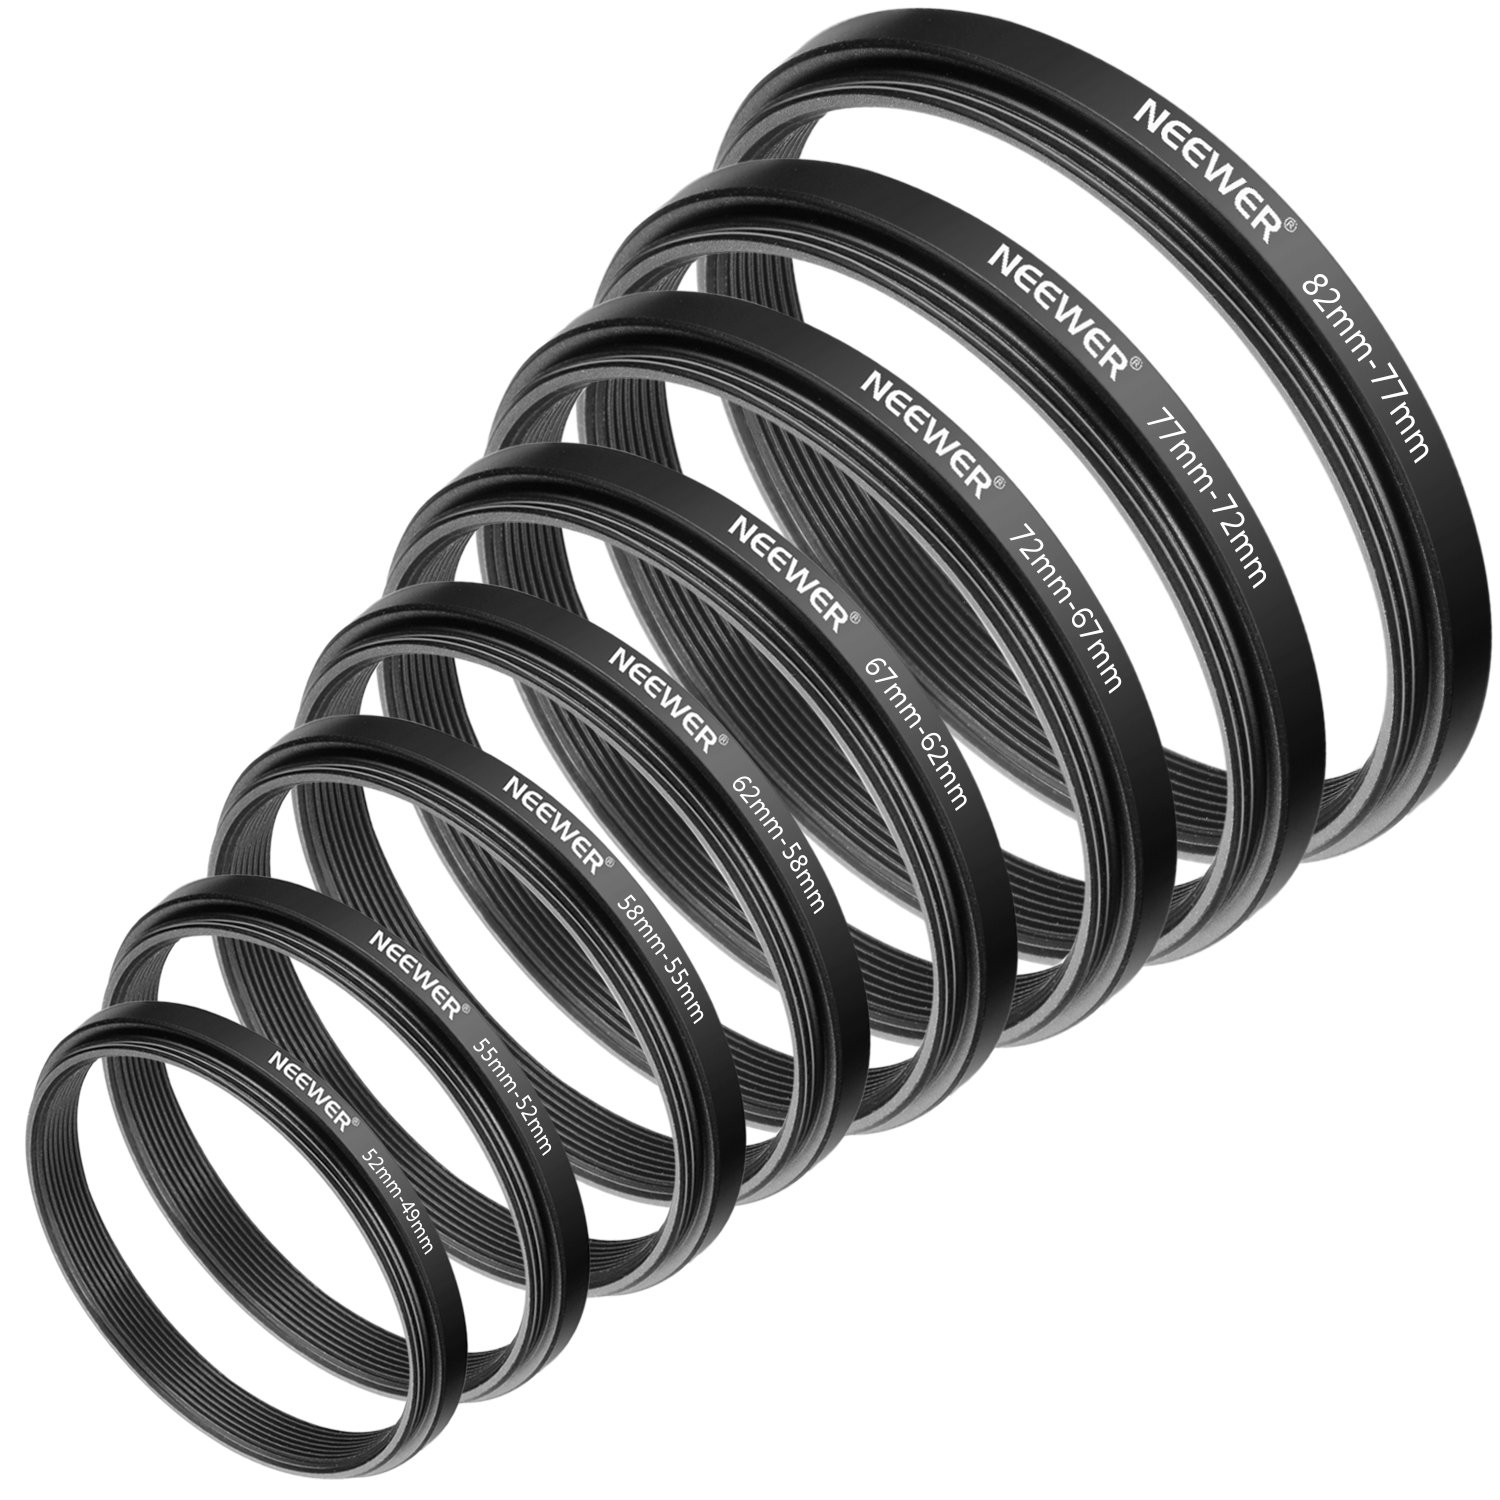 Neewer 8 Pieces Step-down Adapter Ring Set Made of Premium Anodized Aluminum,includes: 52-49MM,55-52MM,58-55MM,62-58MM,67-62MM,72-67MM,77-72MM,82-77MM(Black) by Neewer